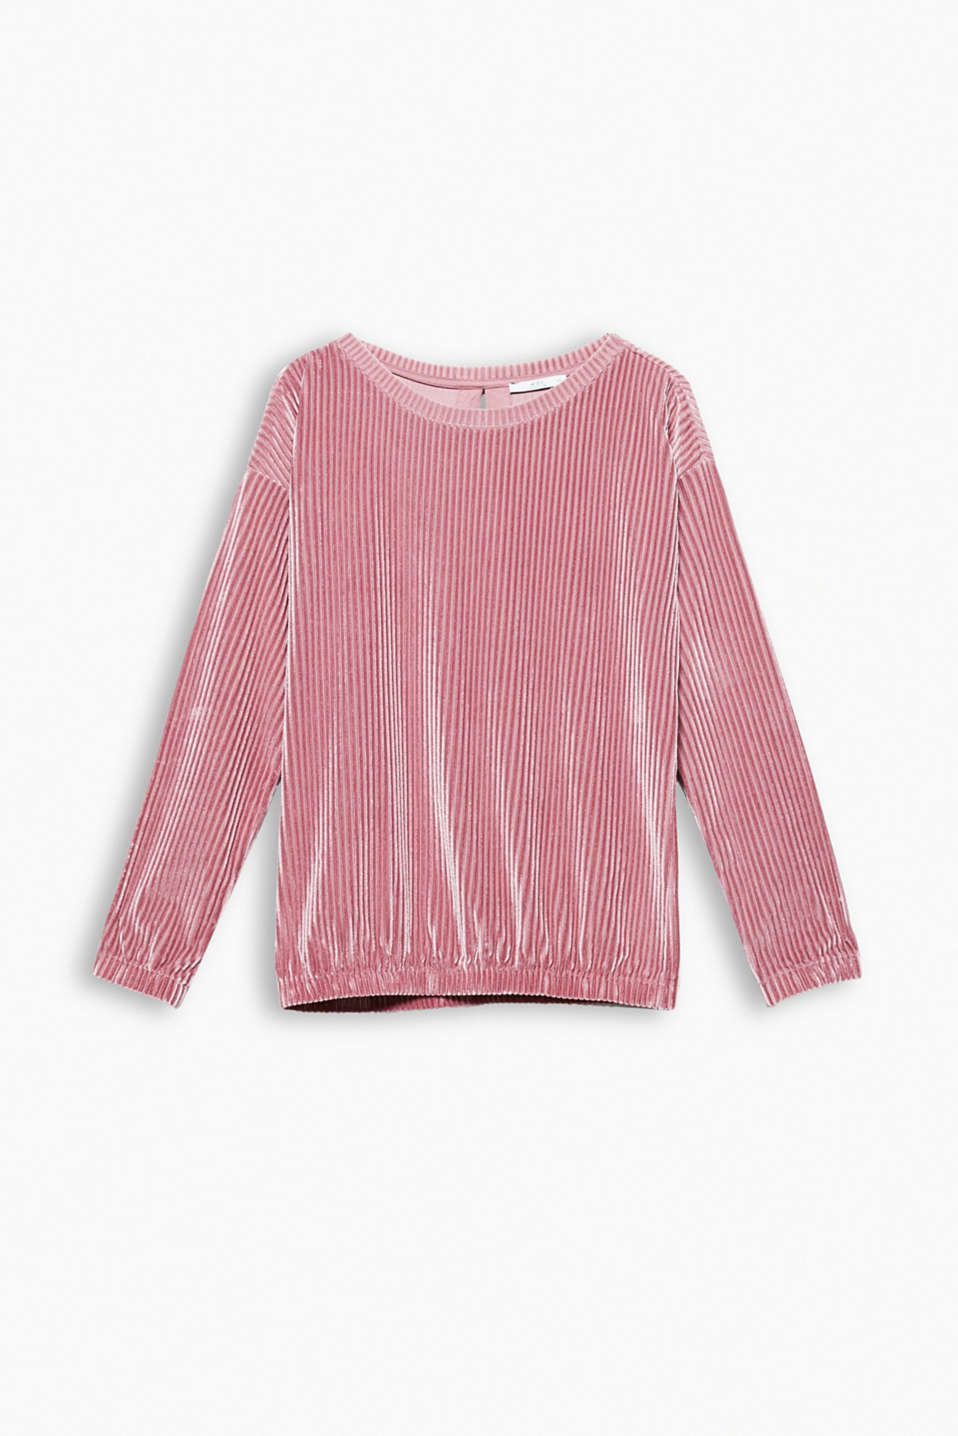 The elegant velvet fabric in combination with the sporty ribbed texture gives this top an extremely trendy look.